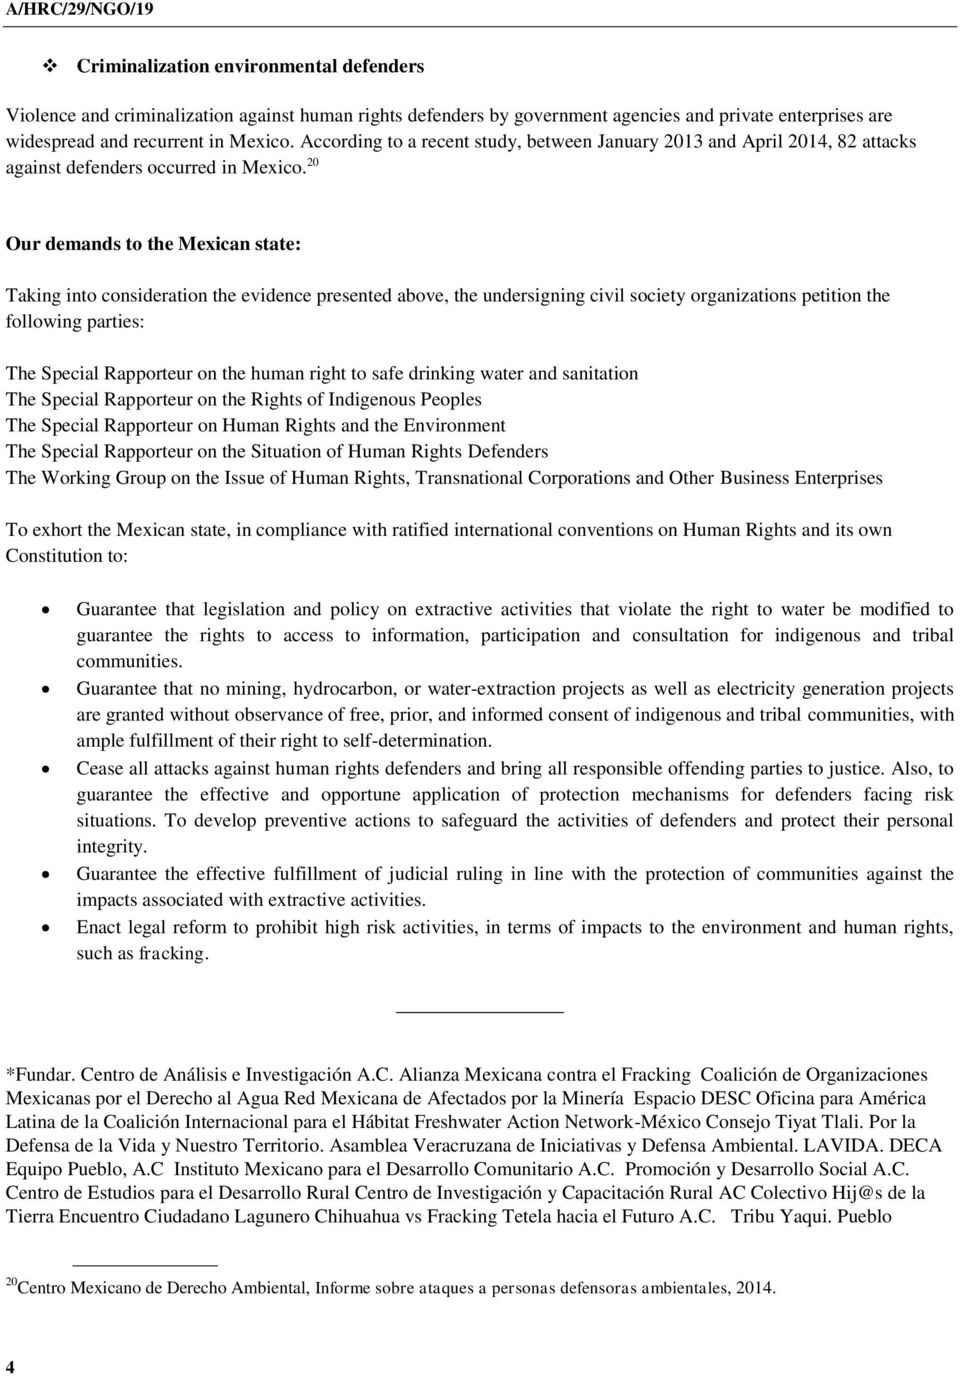 20 Our demands to the Mexican state: Taking into consideration the evidence presented above, the undersigning civil society organizations petition the following parties: The Special Rapporteur on the